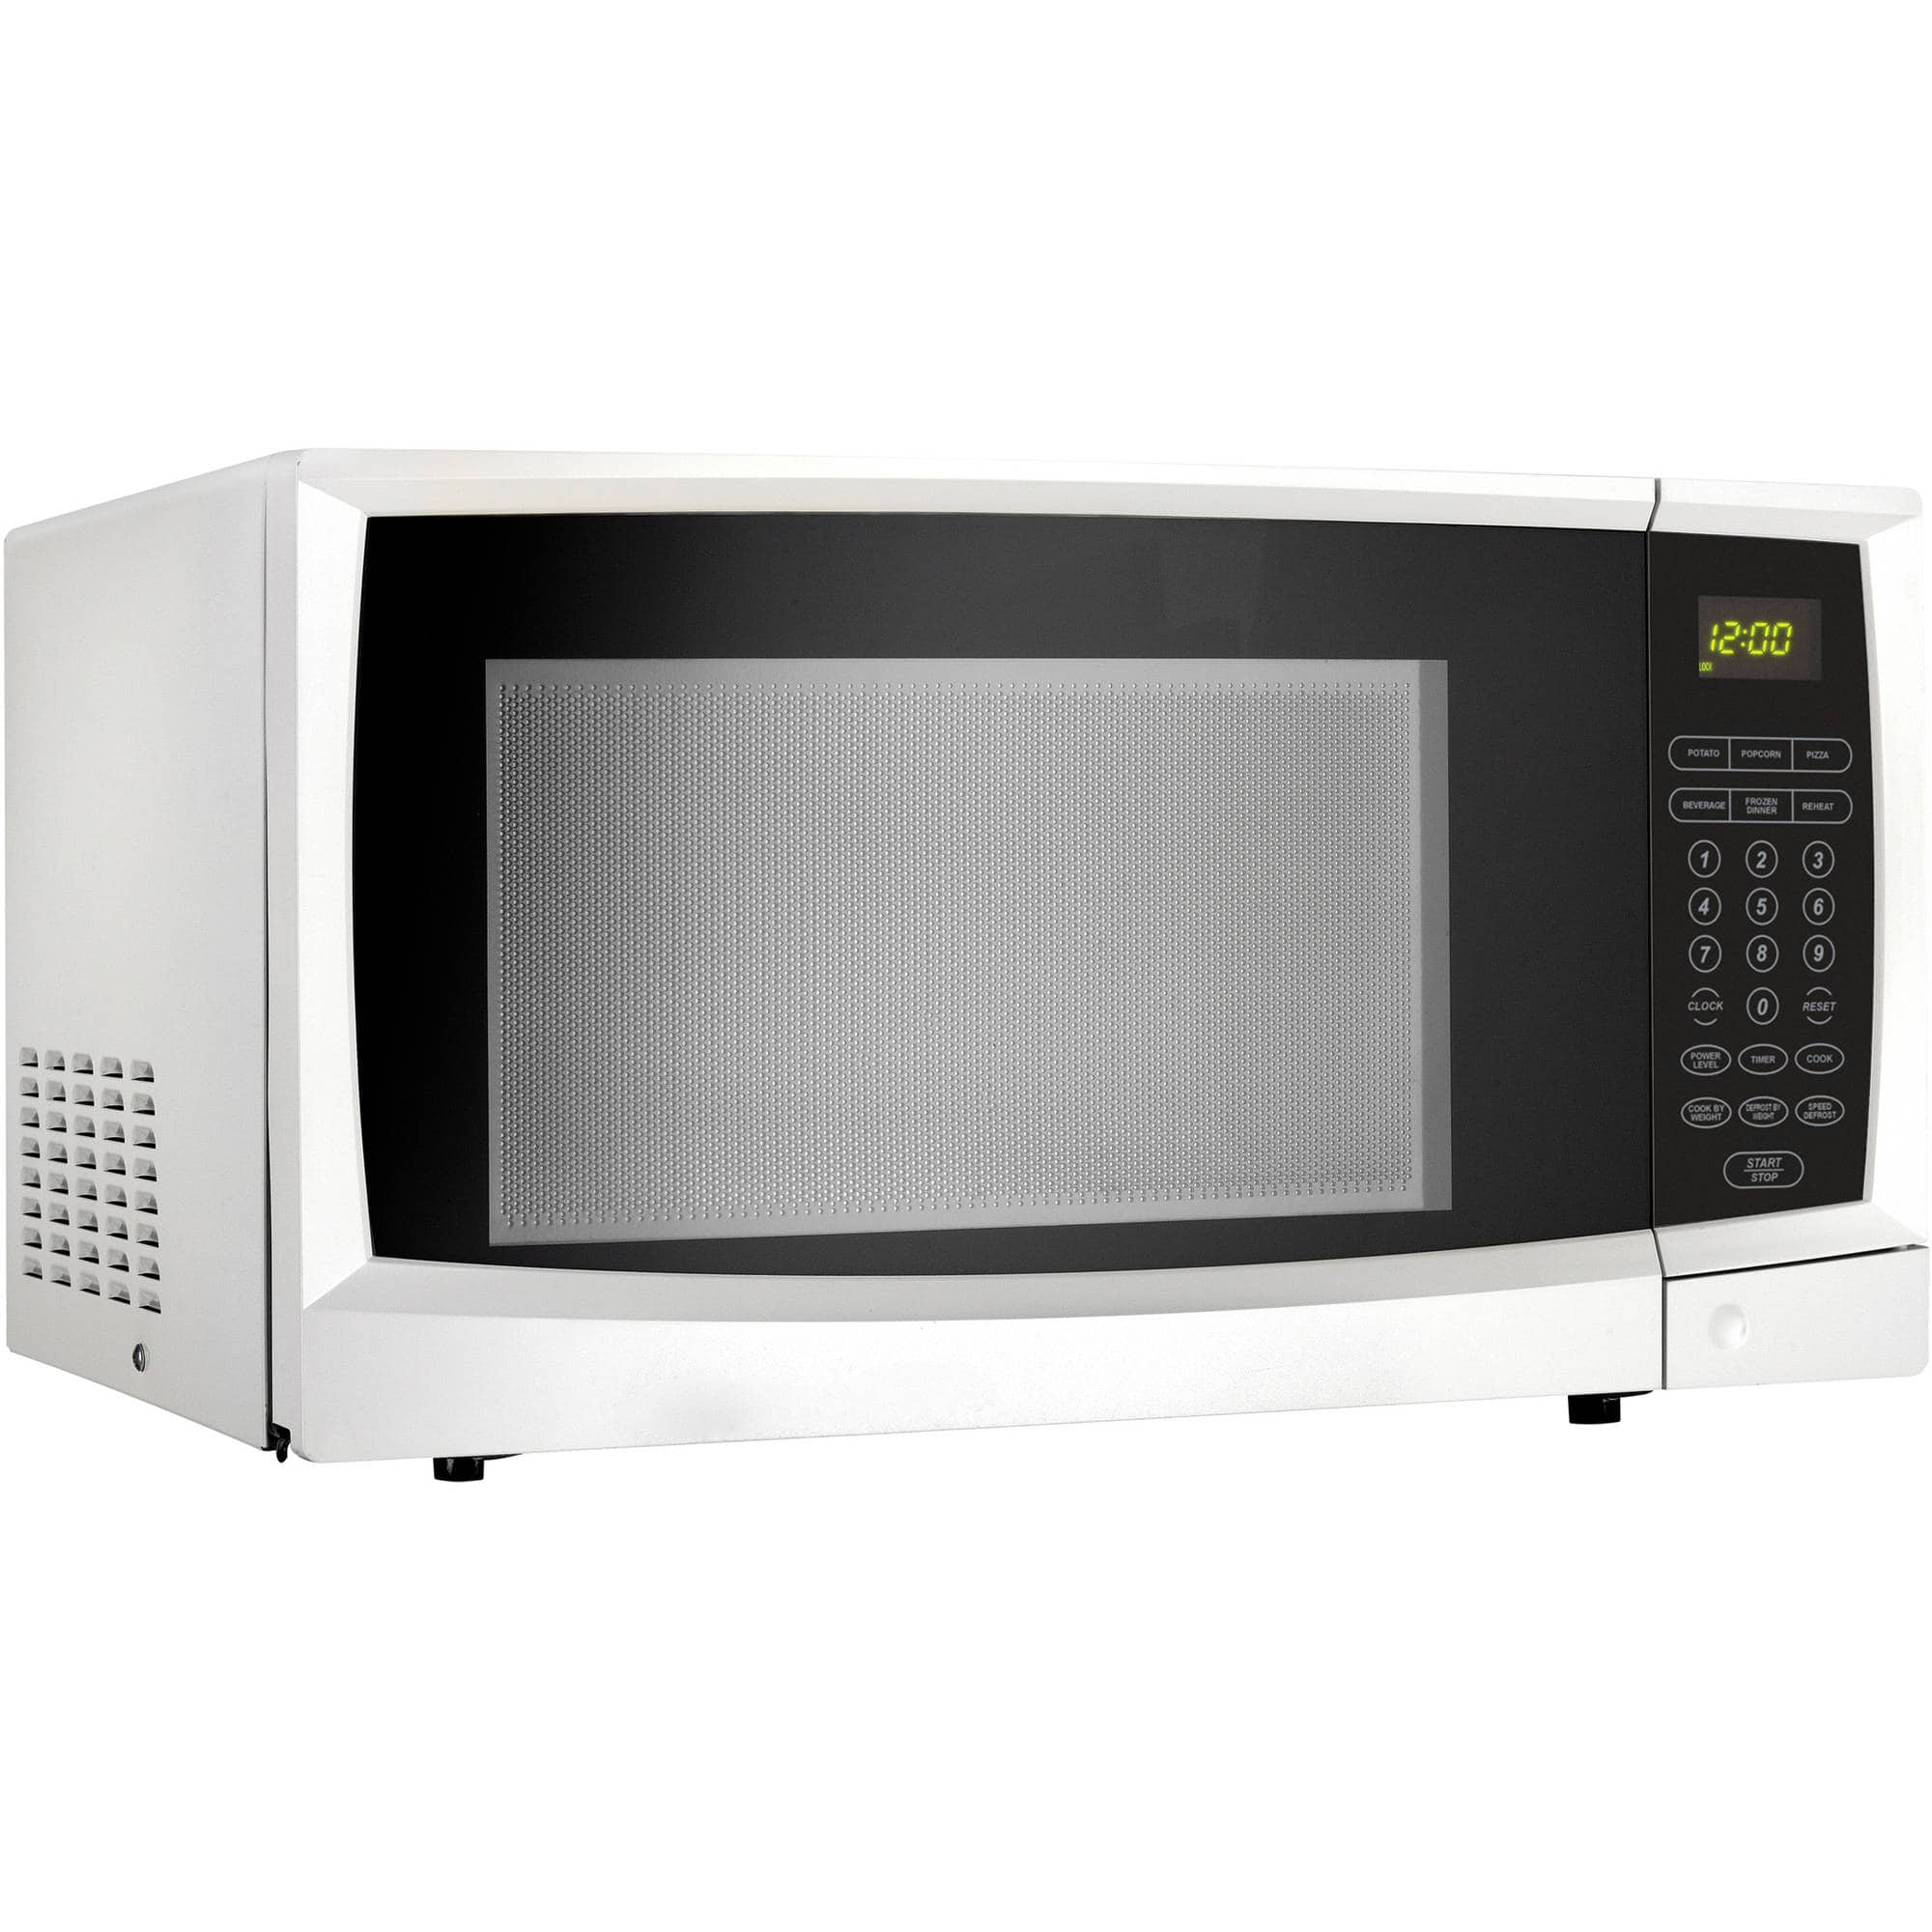 Walmart Countertop Microwave Danby 1 1 Cu Ft 1000w Countertop Microwave Oven White